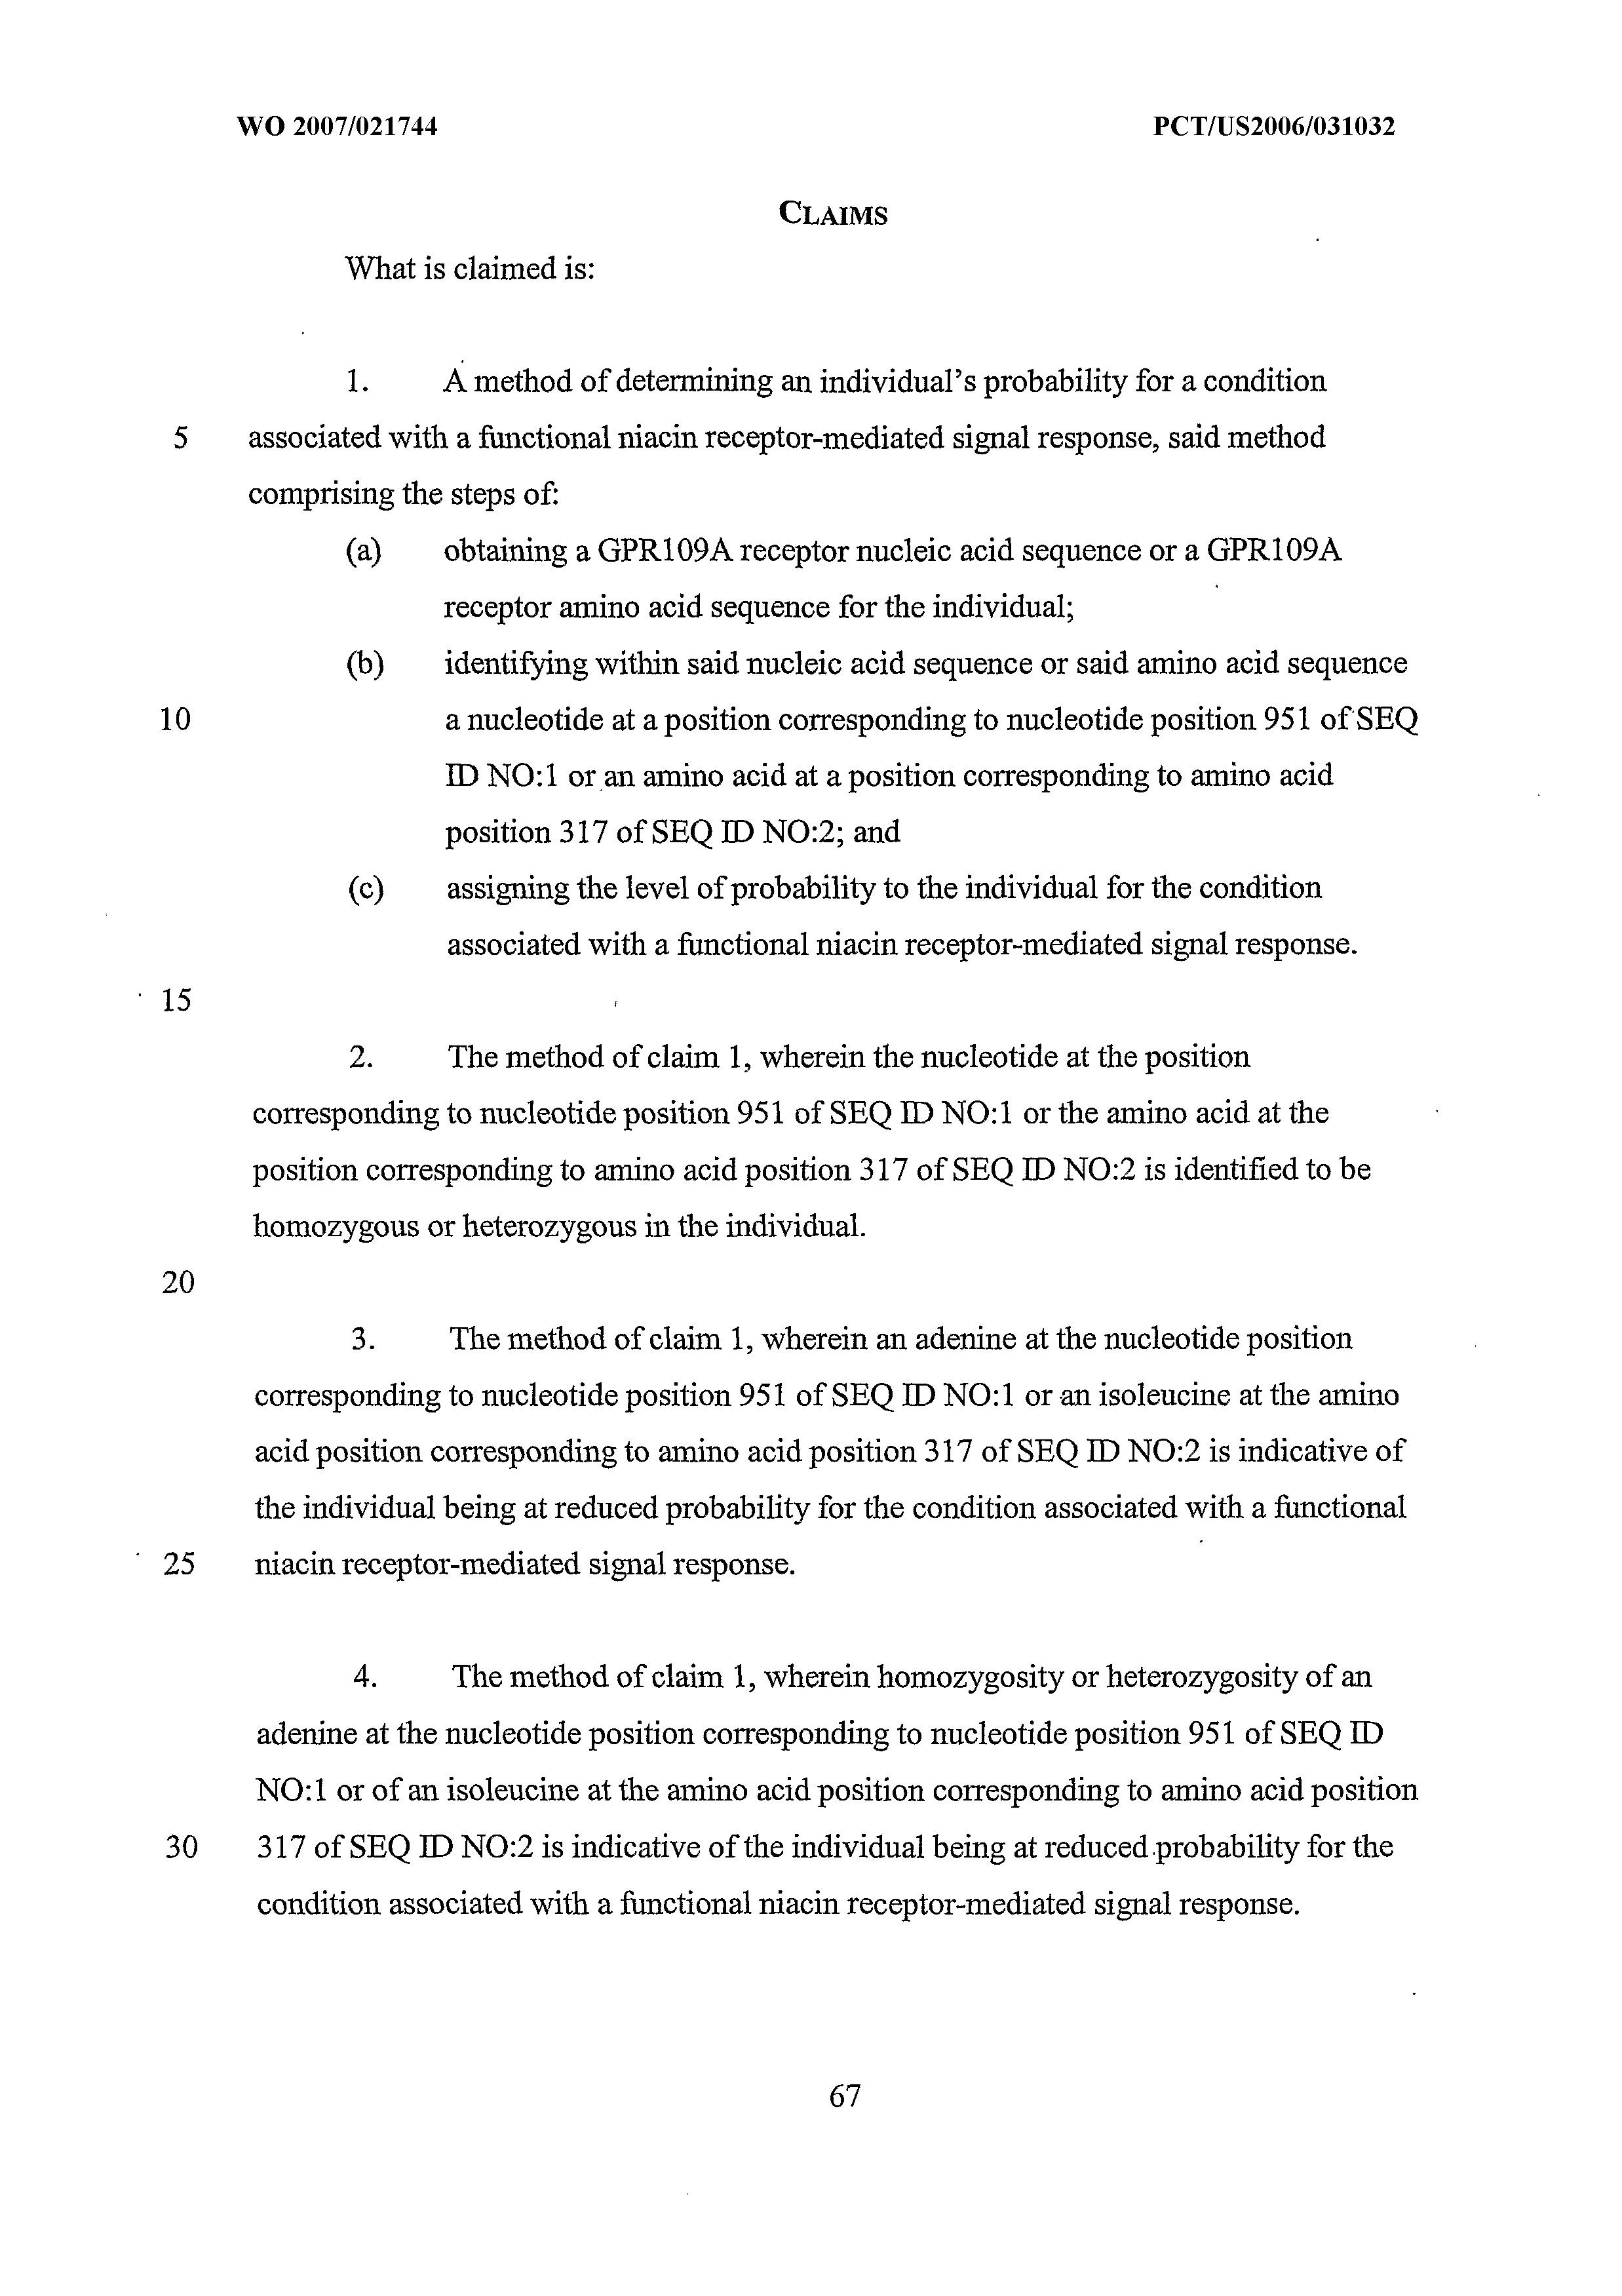 WO 2007/021744 A1 - Methods For Determining Probability Of